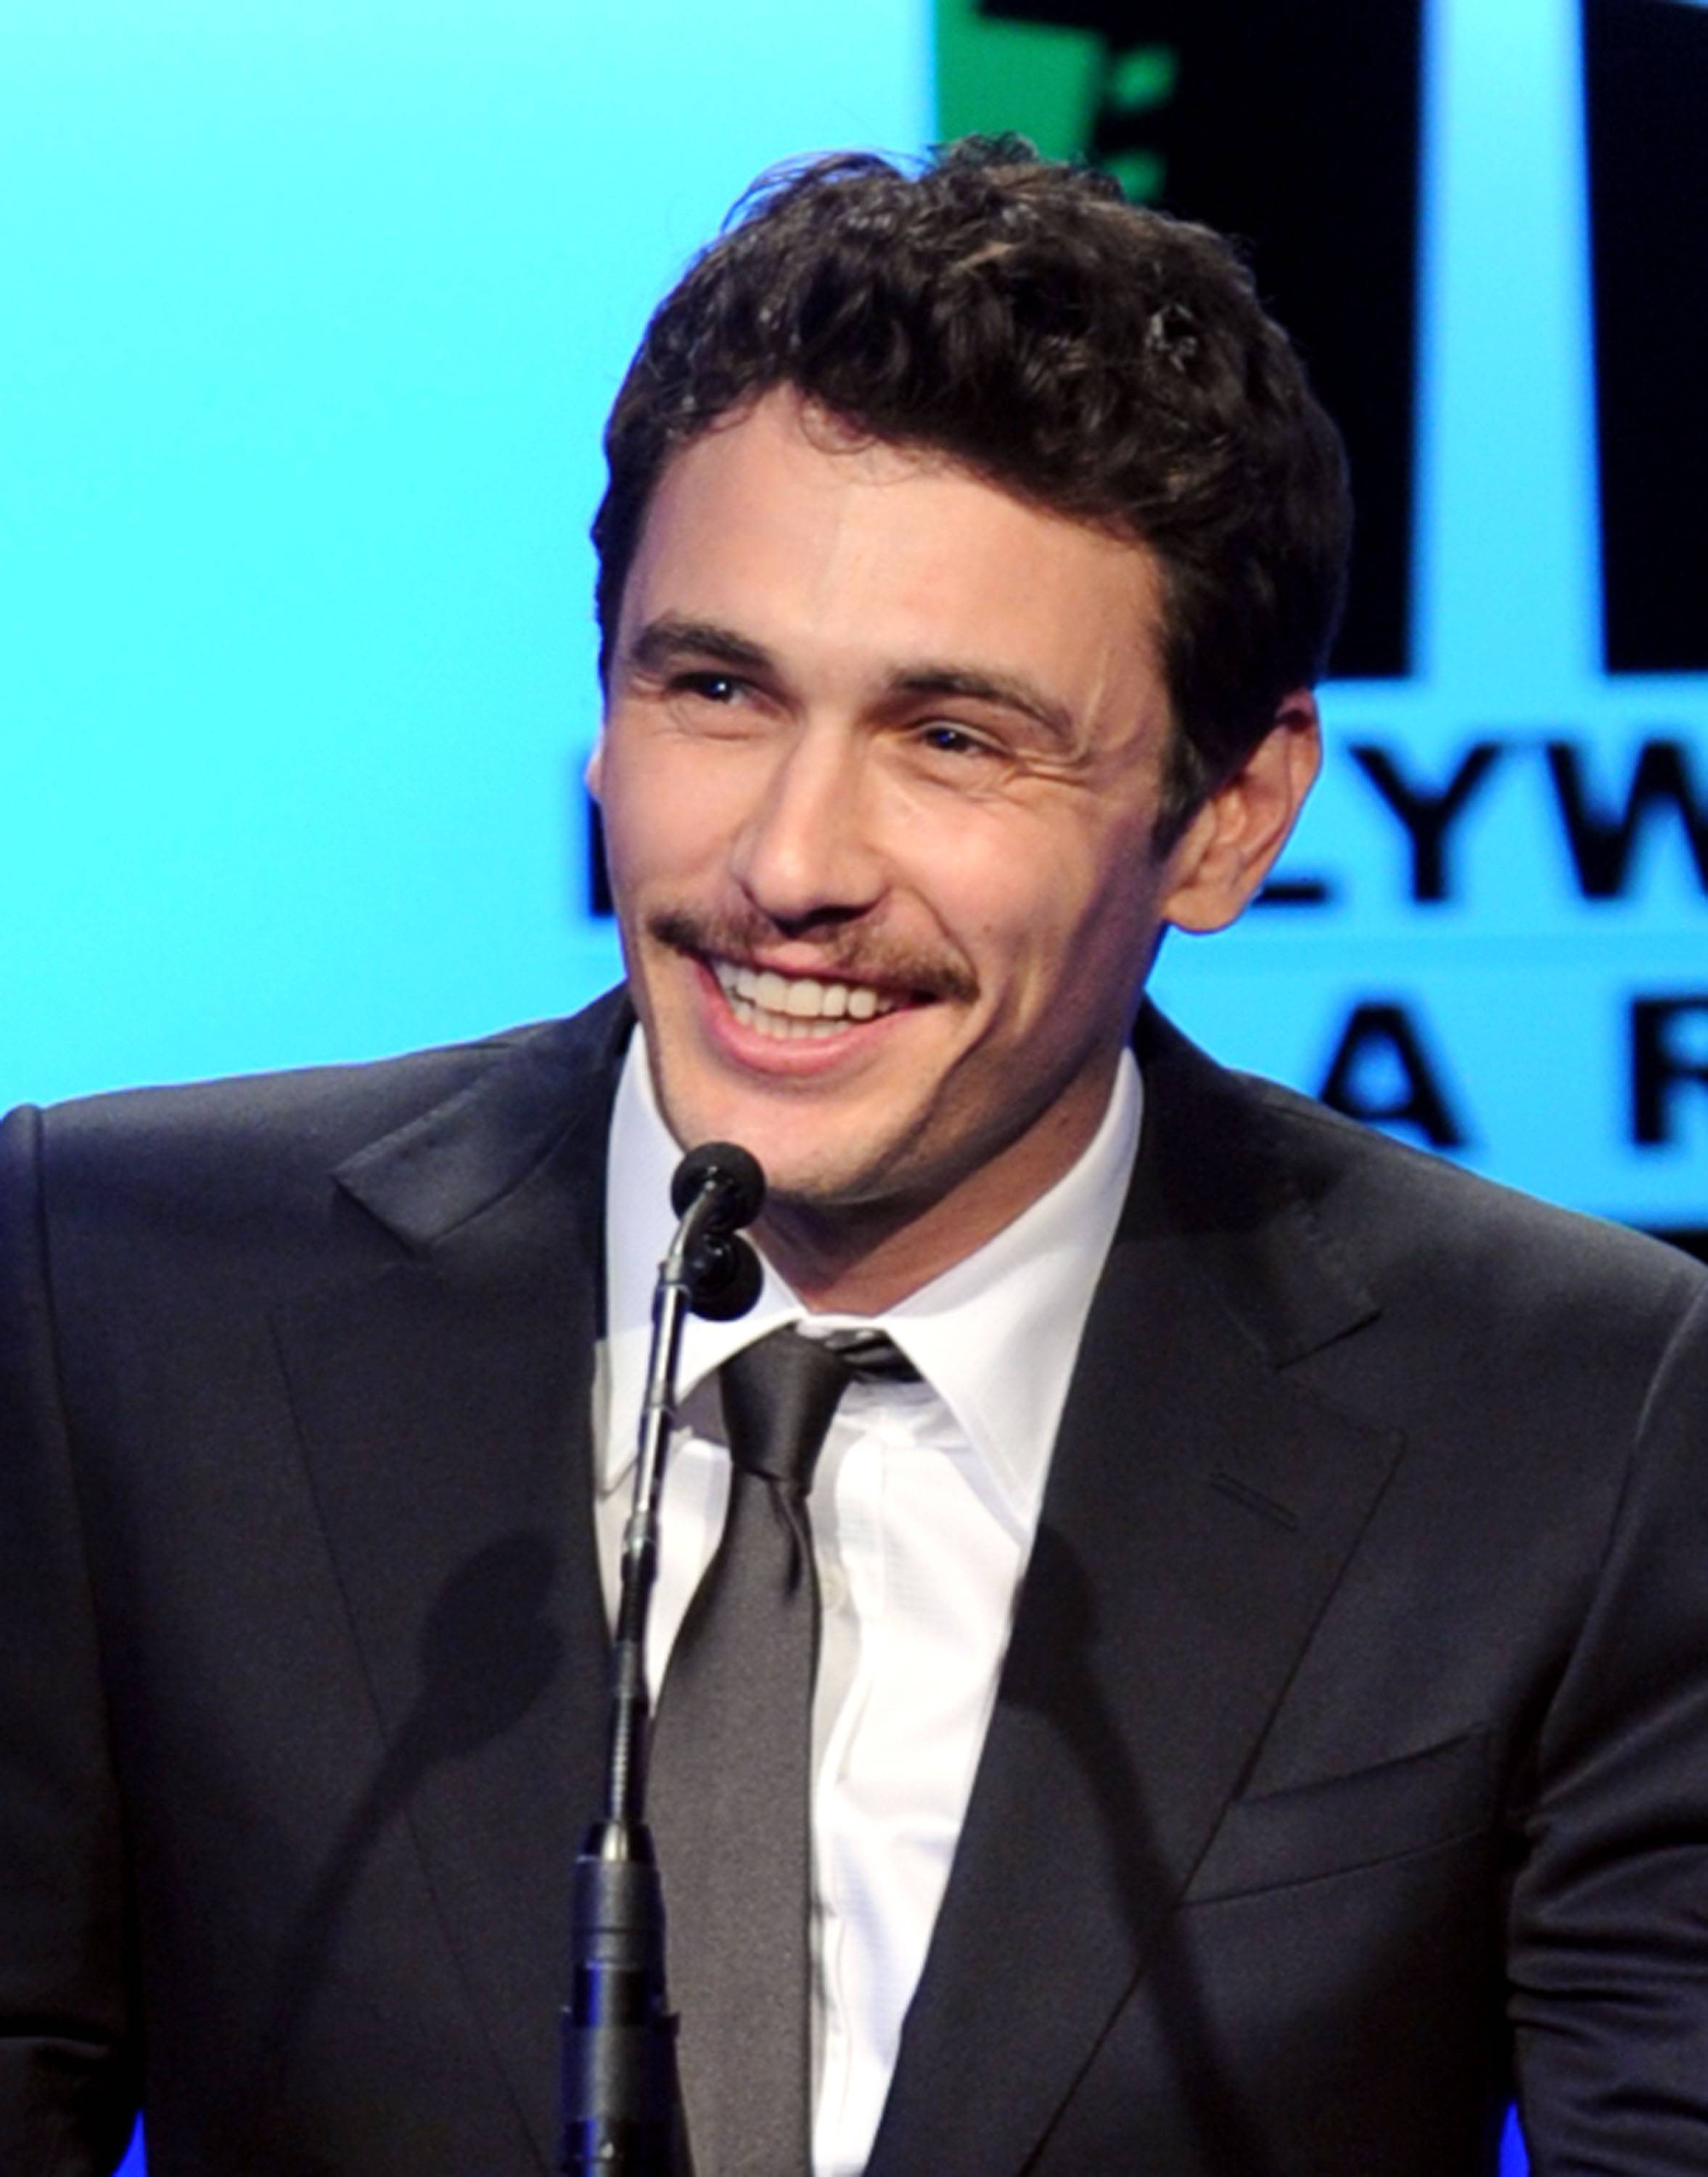 Actor James Franco speaks onstage during the 14th annual Hollywood Awards Gala at The Beverly Hilton Hotel on October 25, 2010 in Beverly Hills, California.